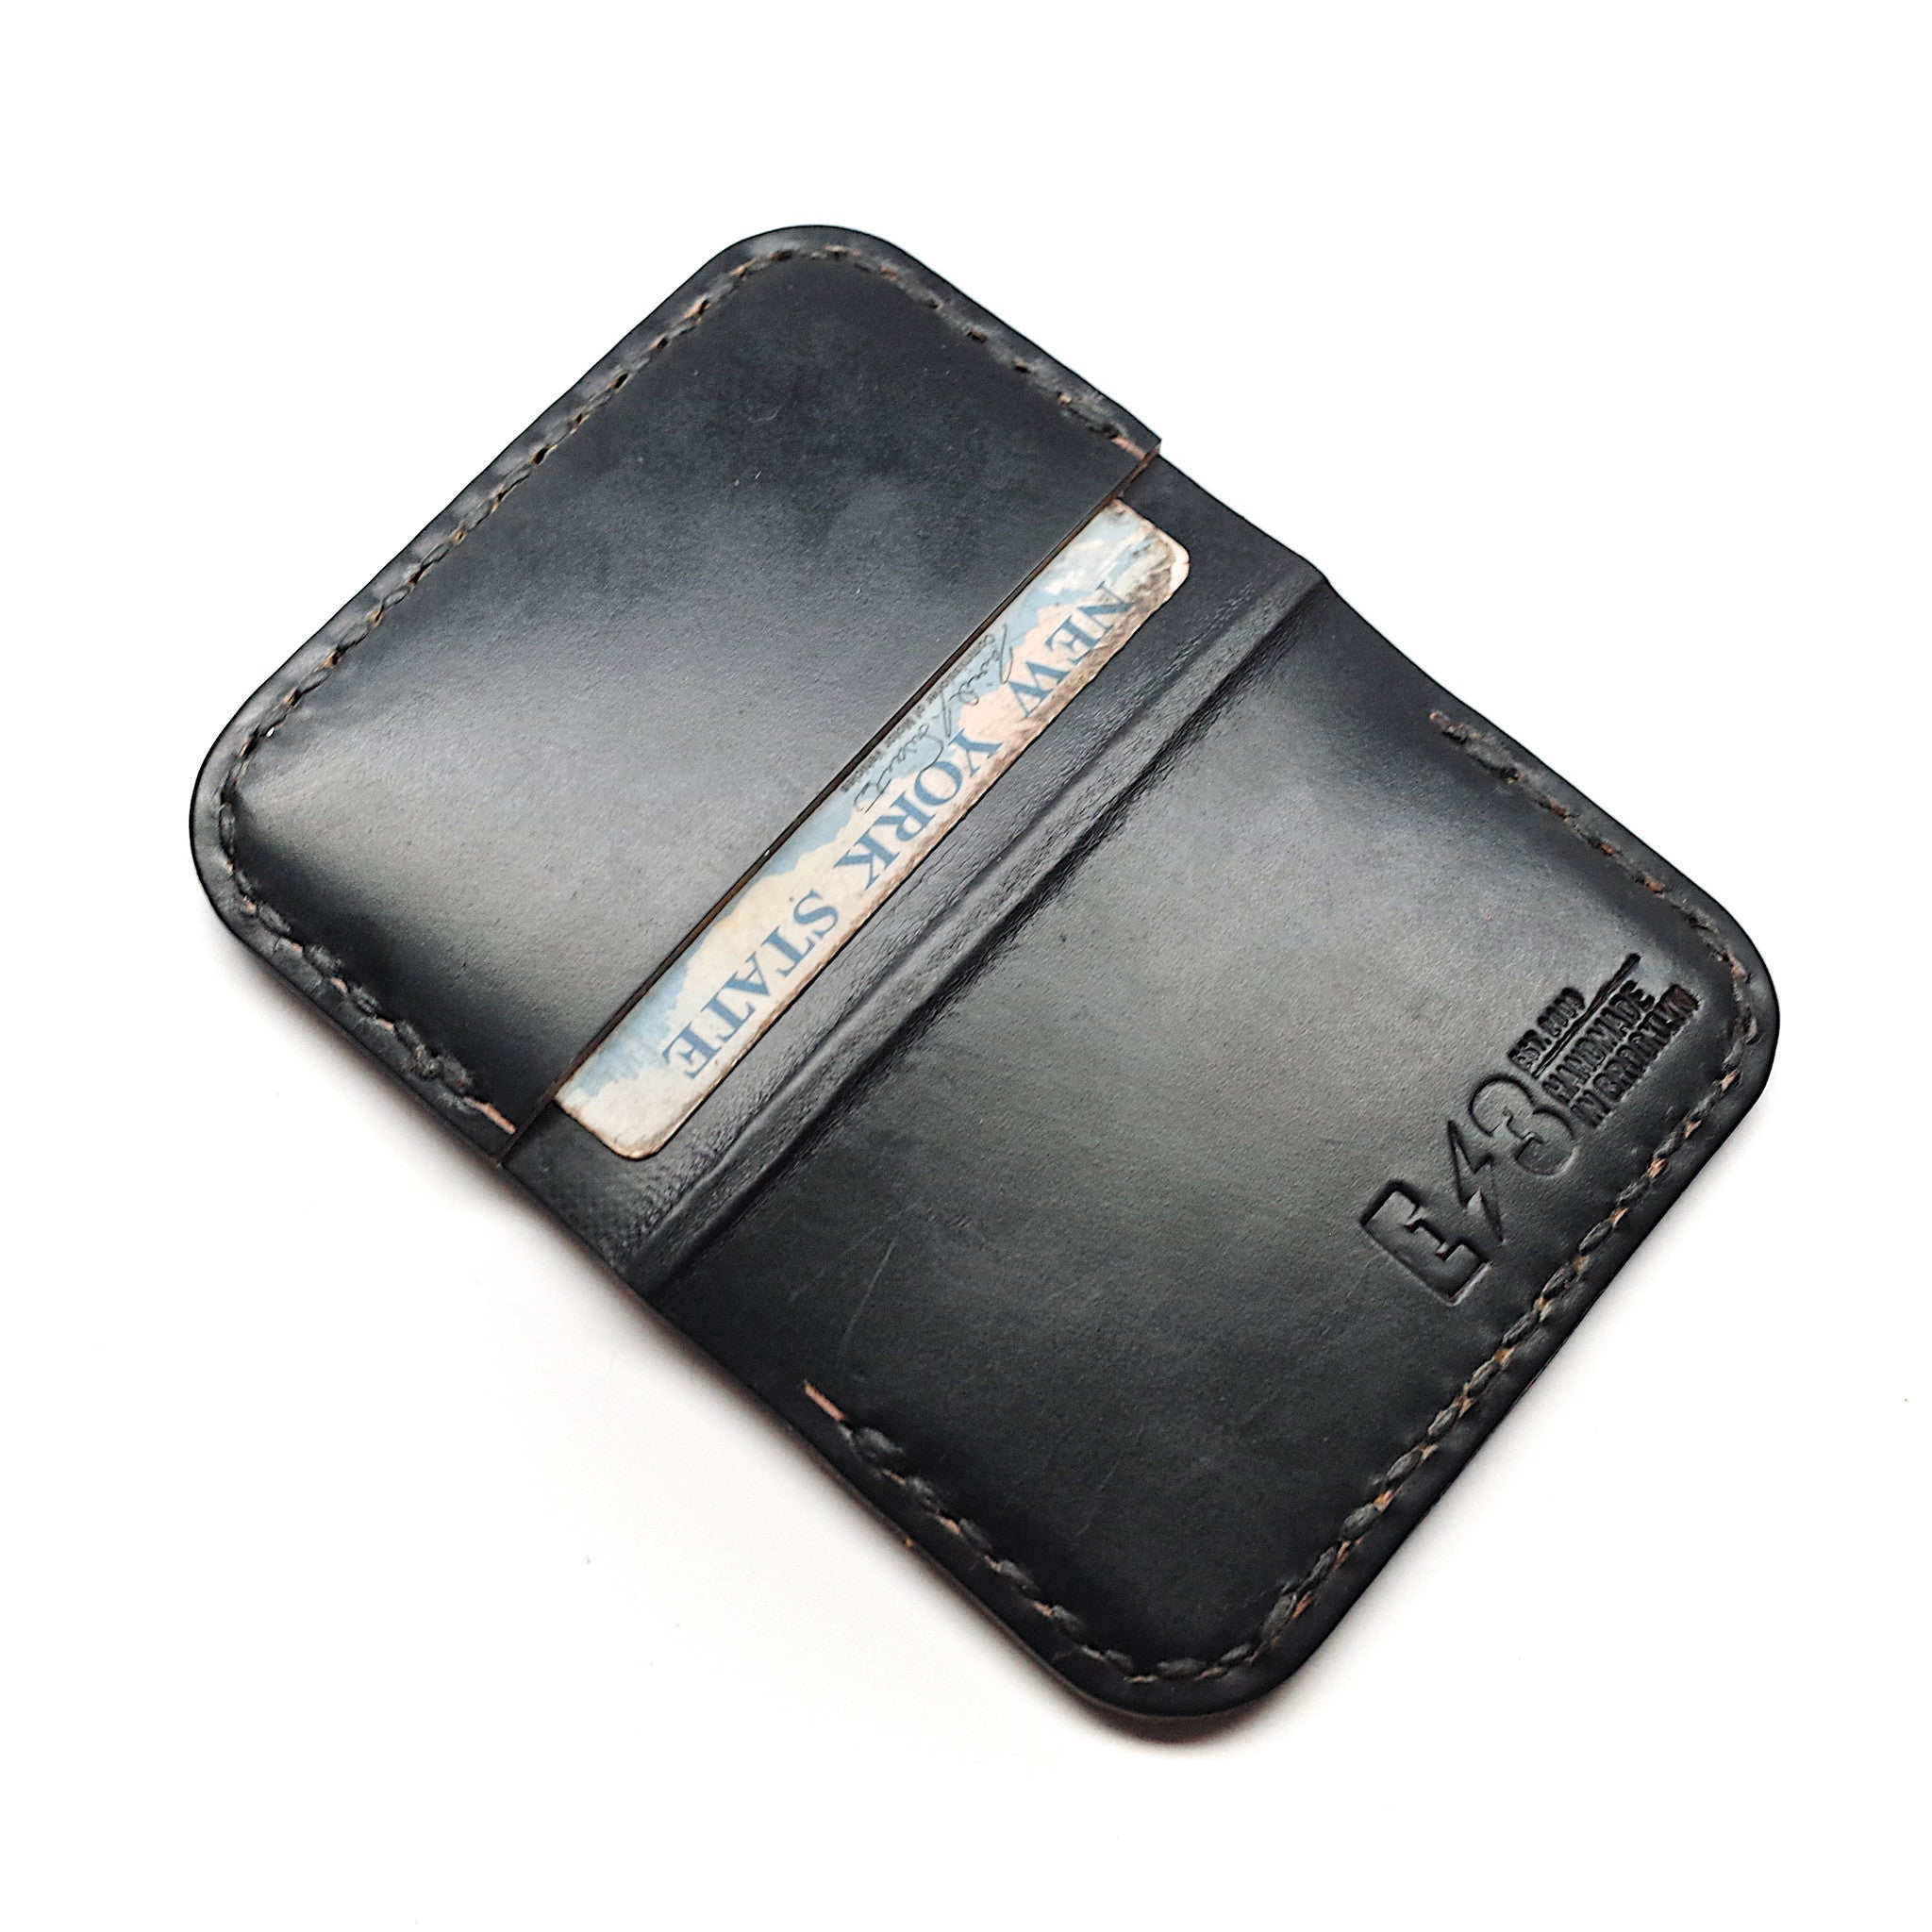 Horween Leather Front Pocket Wallet by E3 Supply Co- Black Chromexcel